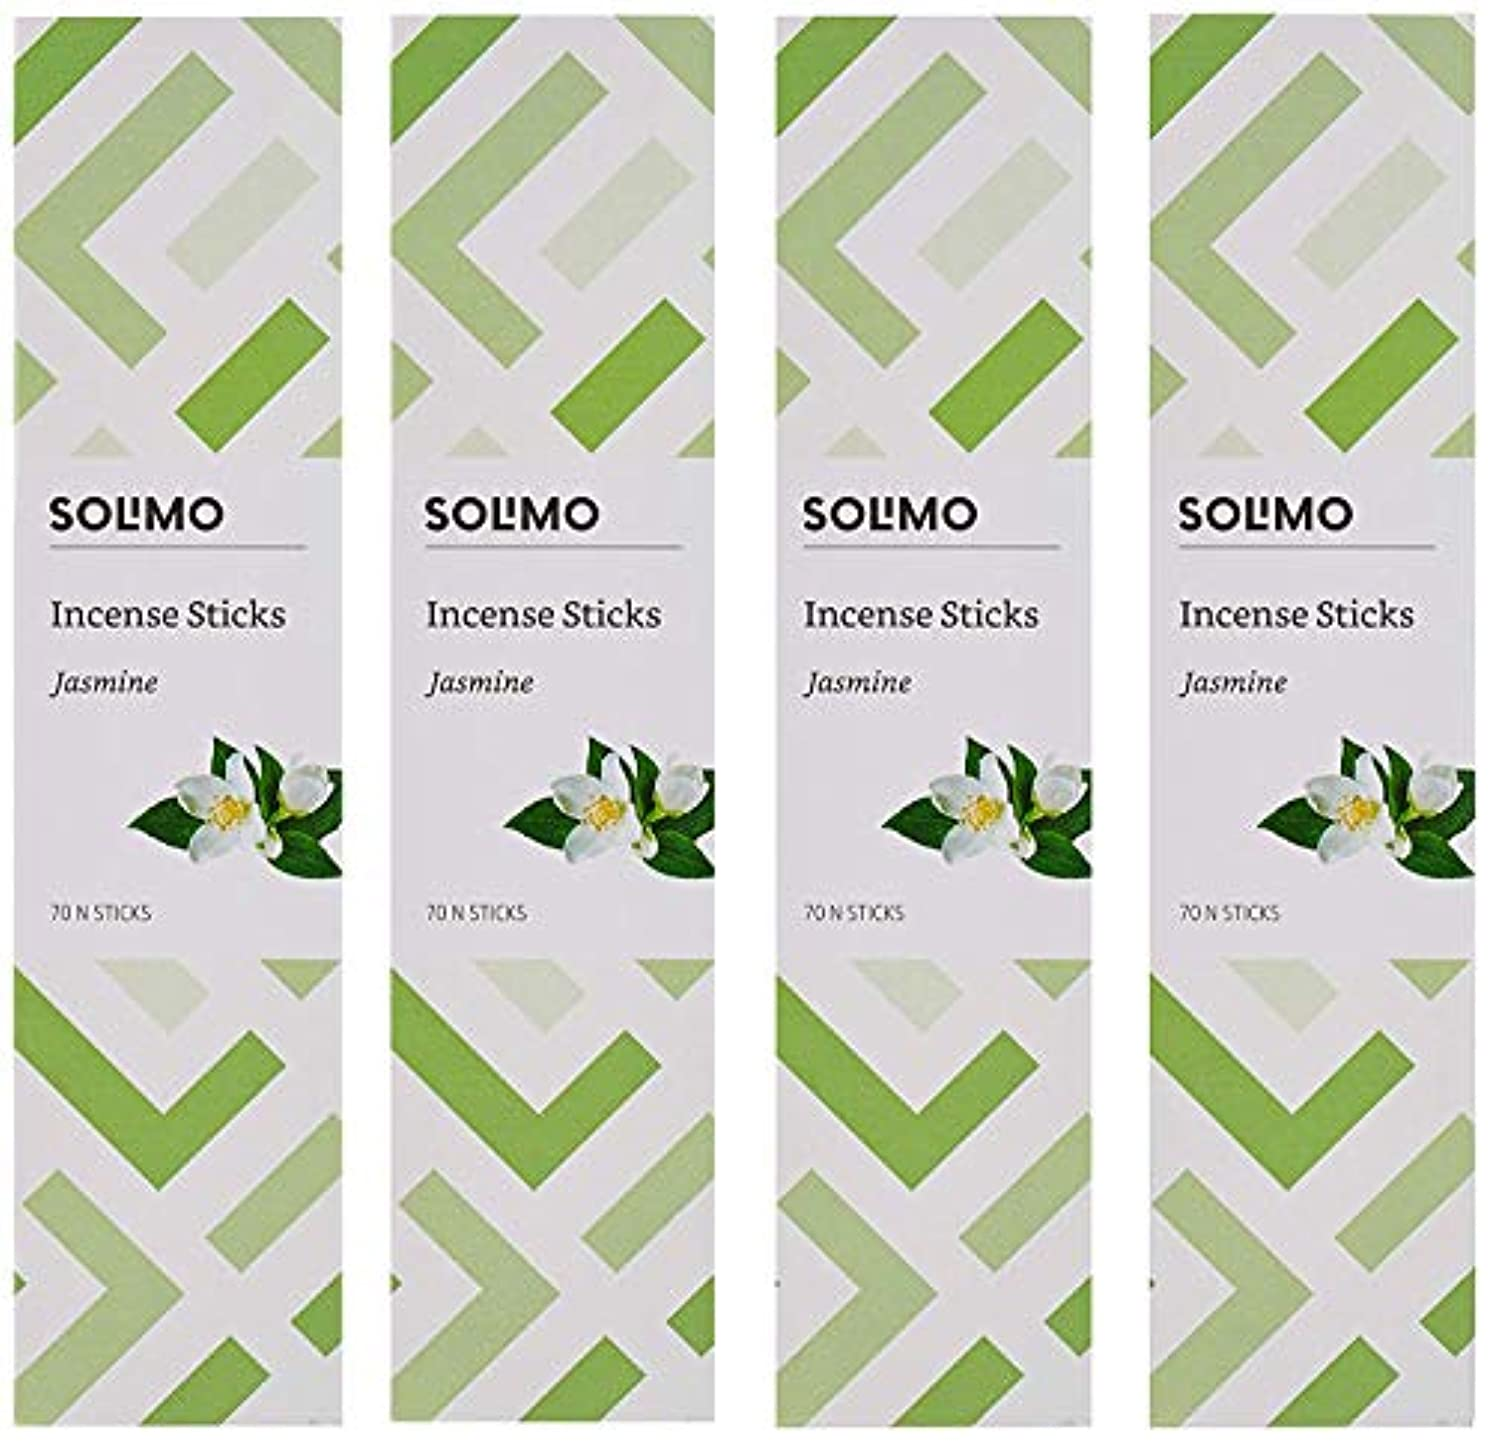 落ち着いて収容する意識Amazon Brand - Solimo Incense Sticks, Jasmine - 70 sticks/pack (Pack of 4)